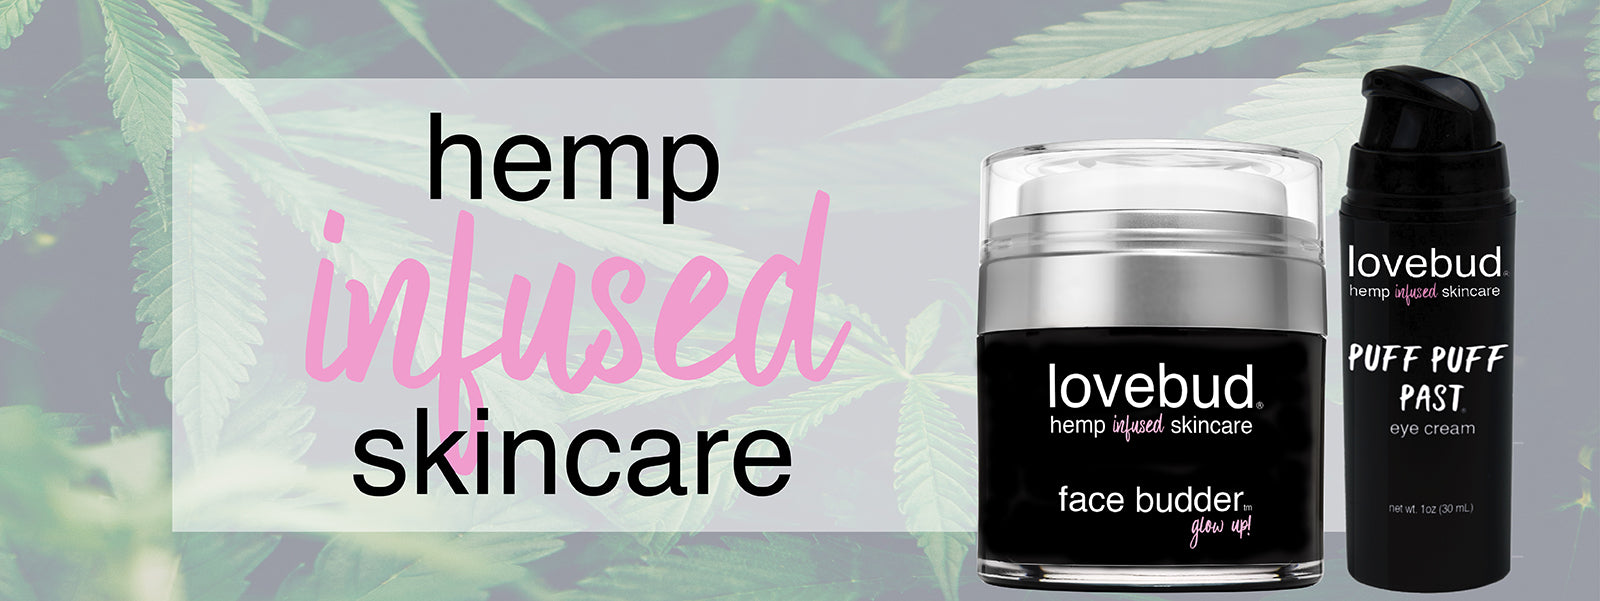 Lovebud Hemp Infused Skincare Story